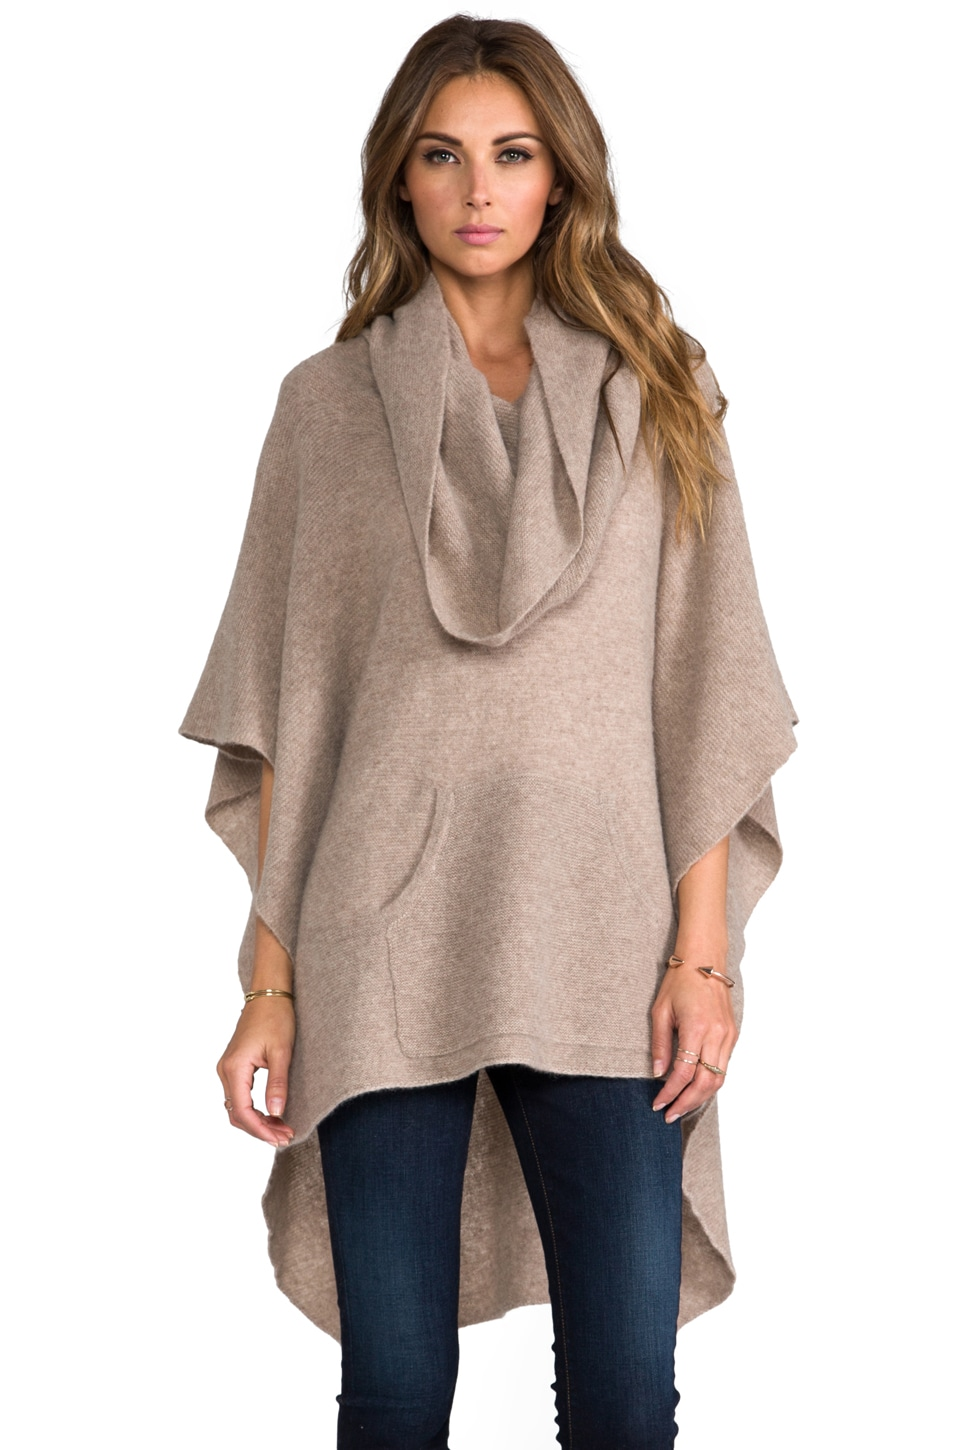 360 Sweater Laurel Cashmere Poncho in Heather Camel